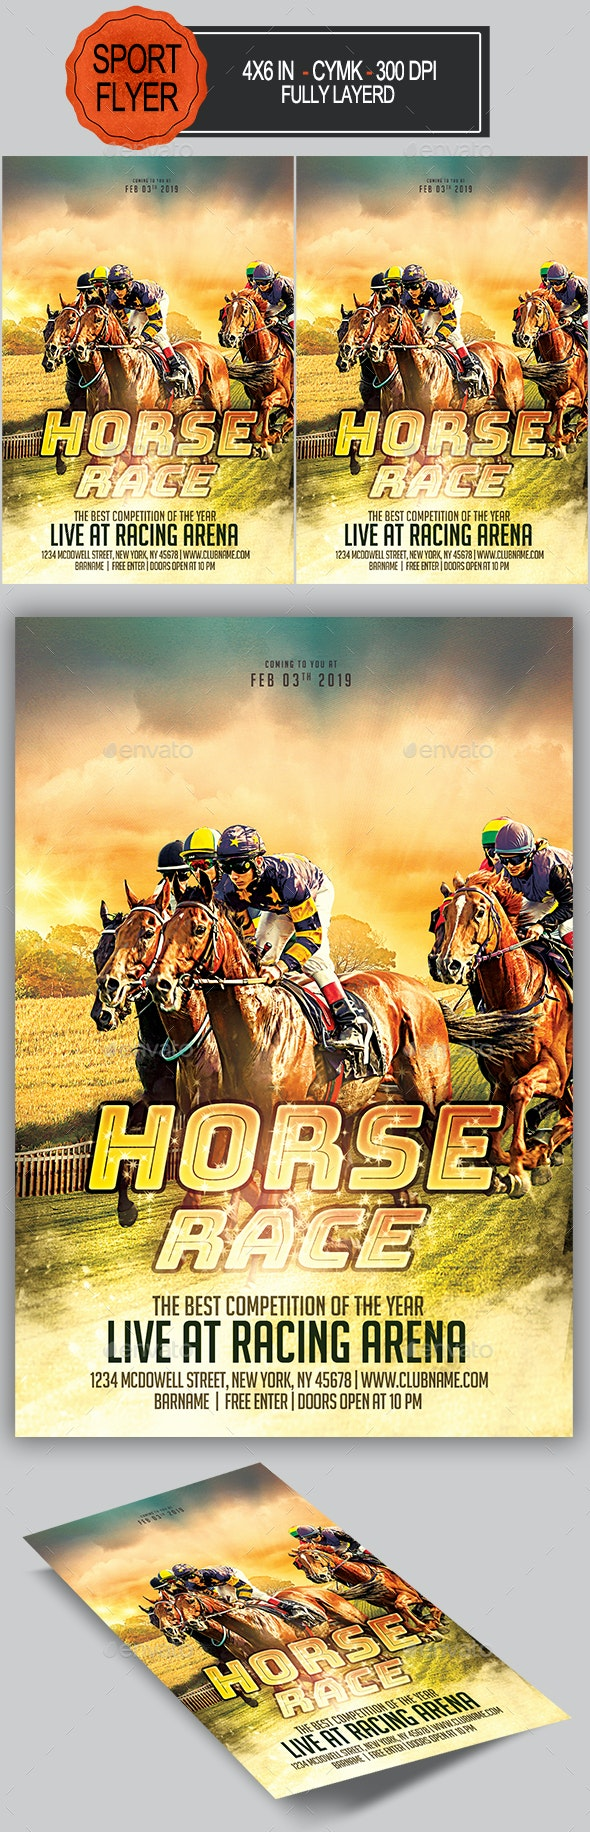 Derby Horse Flyer - Sports Events